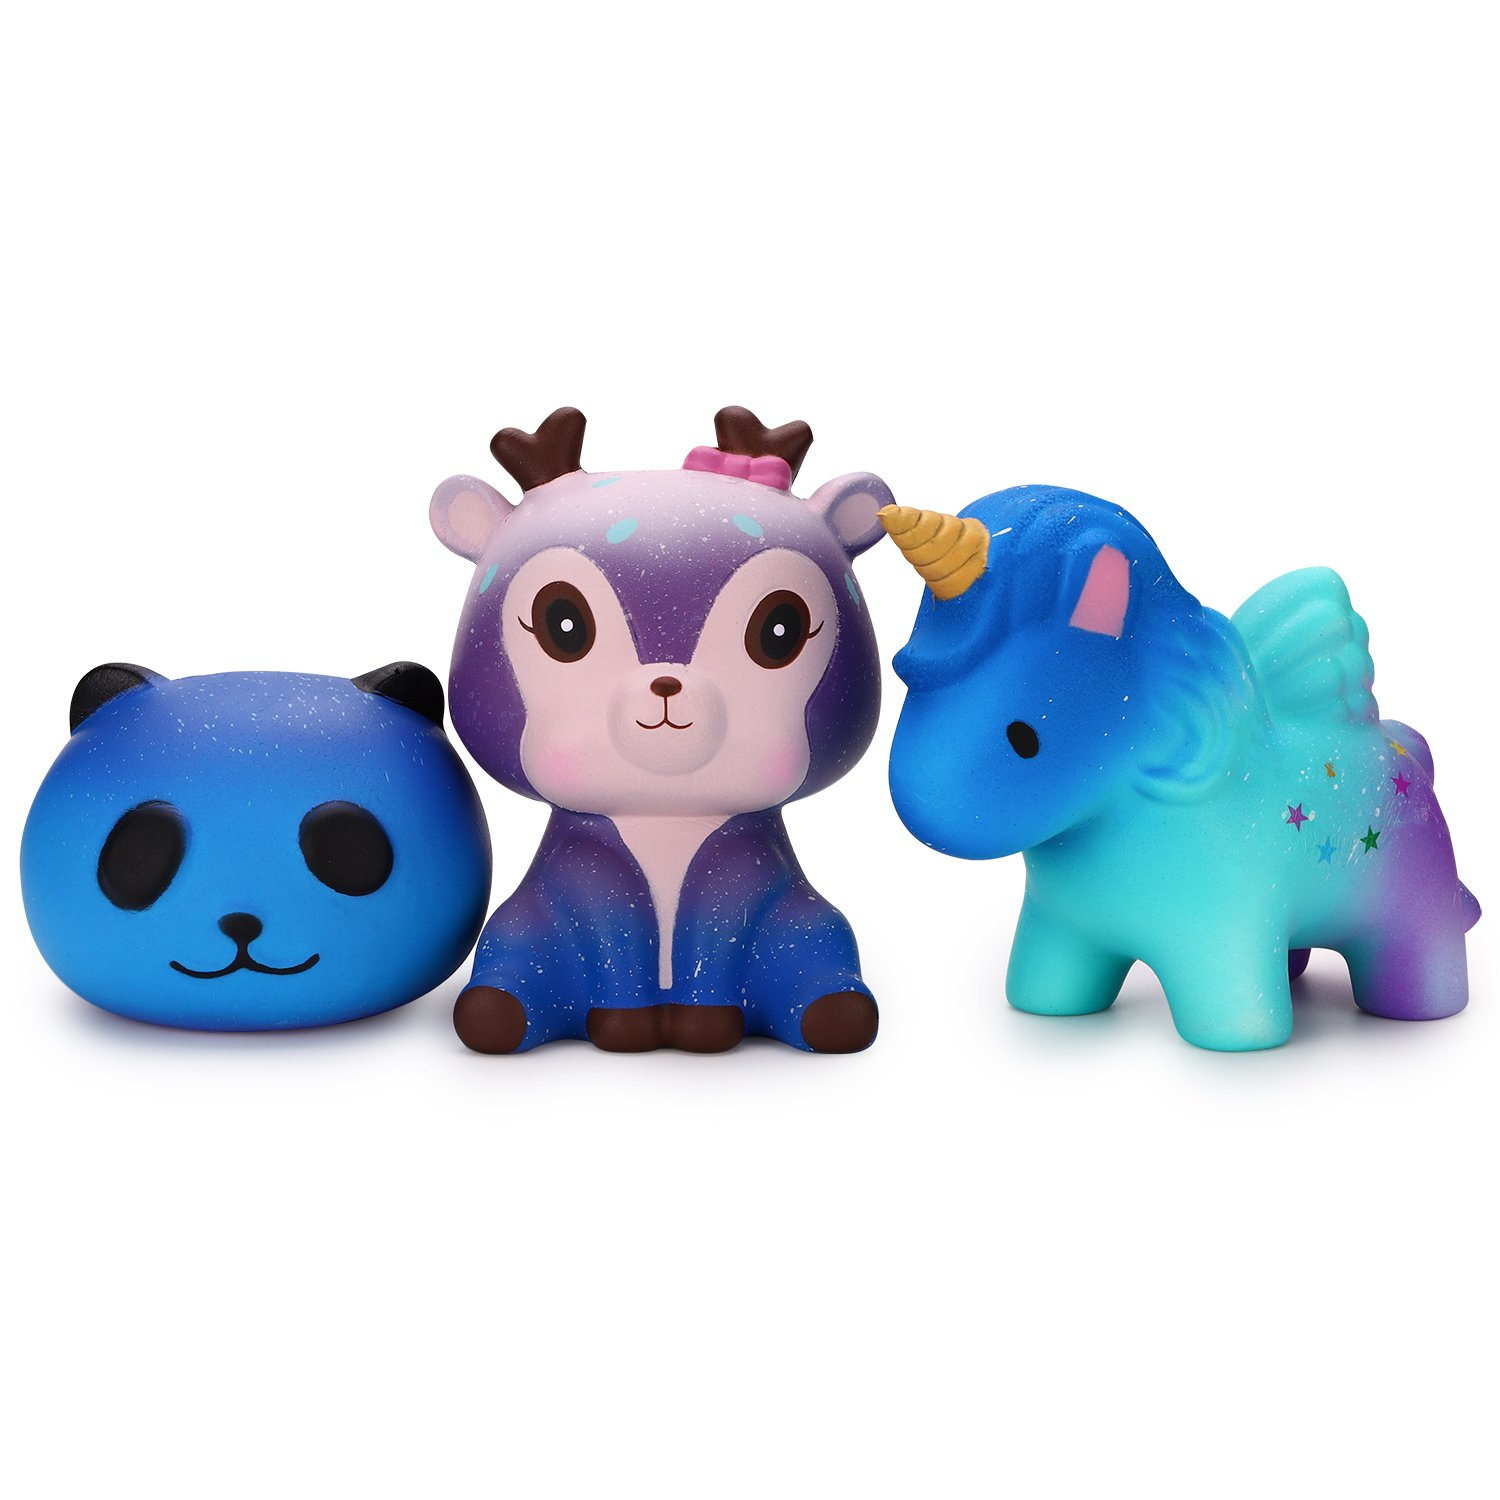 WATINC 3 PCs Animal Sweet Scented Squishy Cute Starry Unicorn Deer Panda Slow Rising Squishy Kid Toy, Lovely Toy,Stress Relief Toy,Decorations Toy Gift Starry Unicorn Set